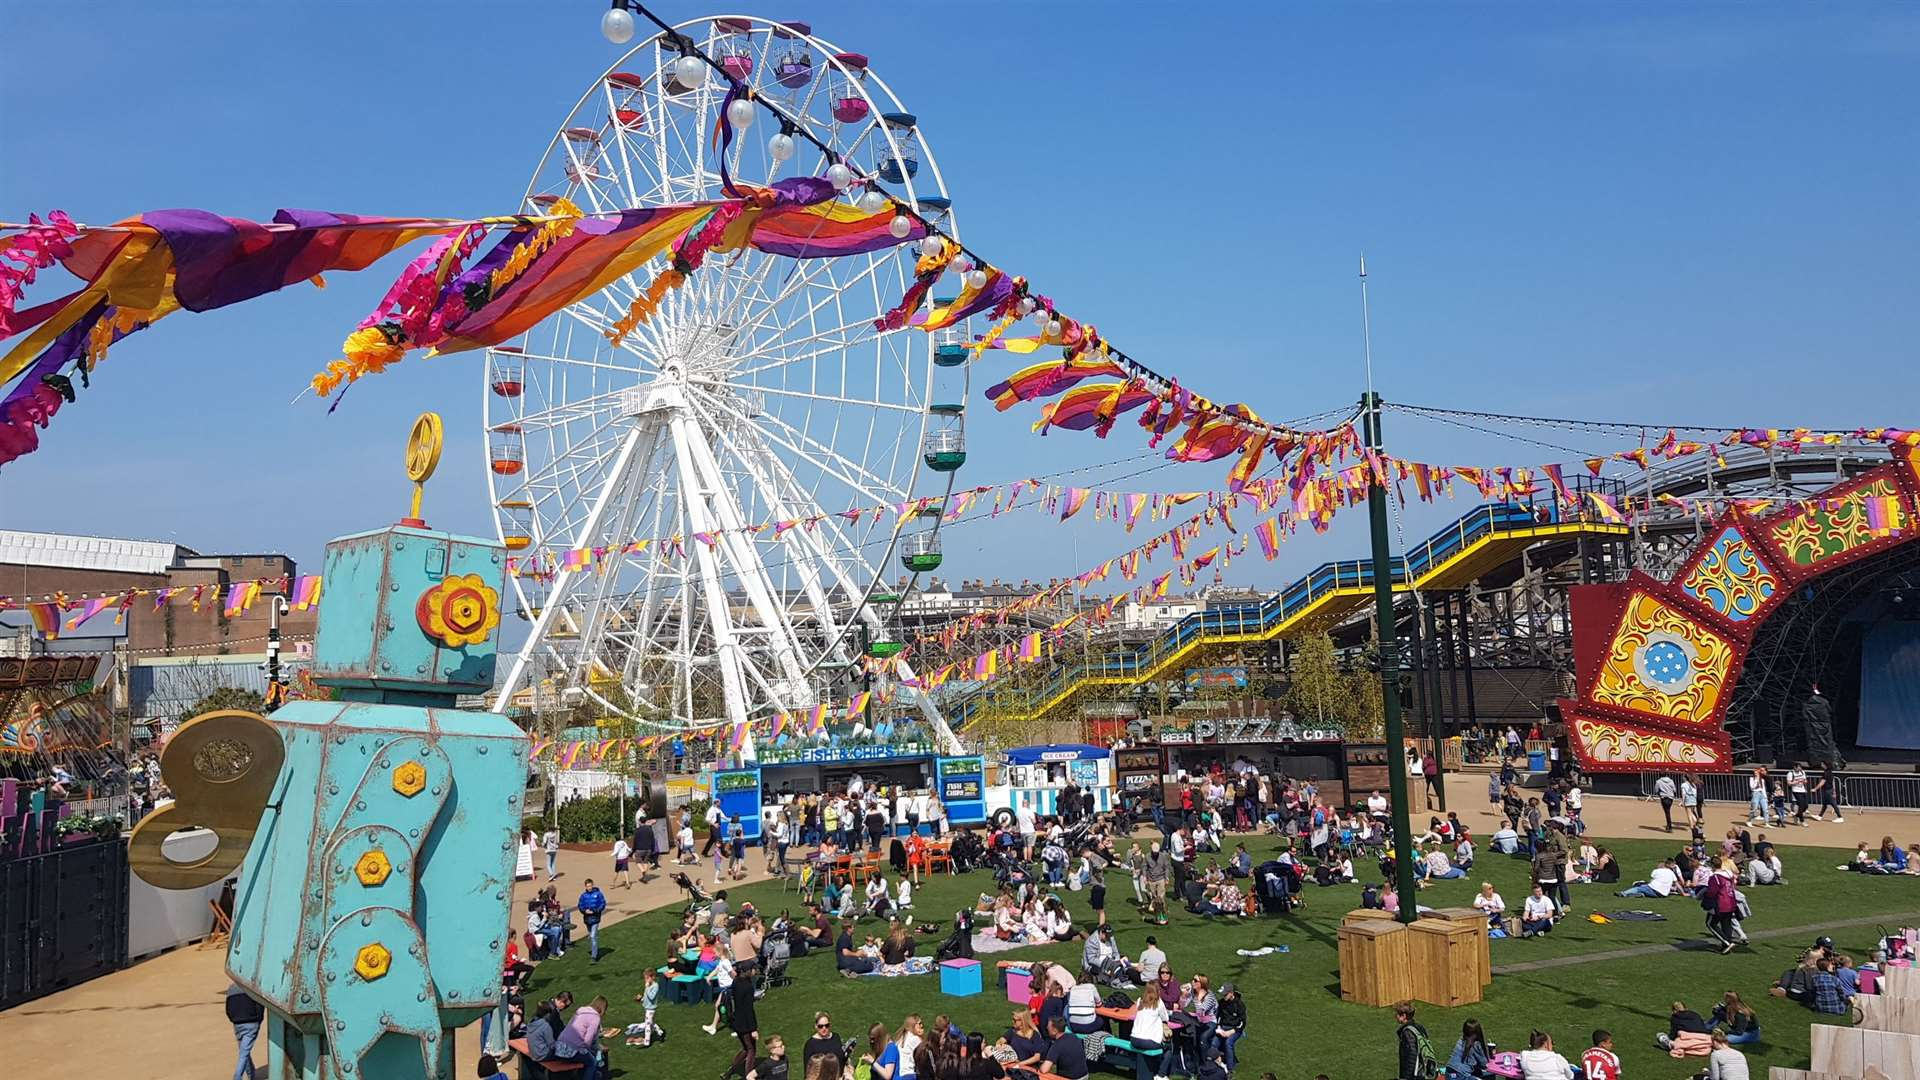 A-level students can get a half-price wristband at Dreamland today